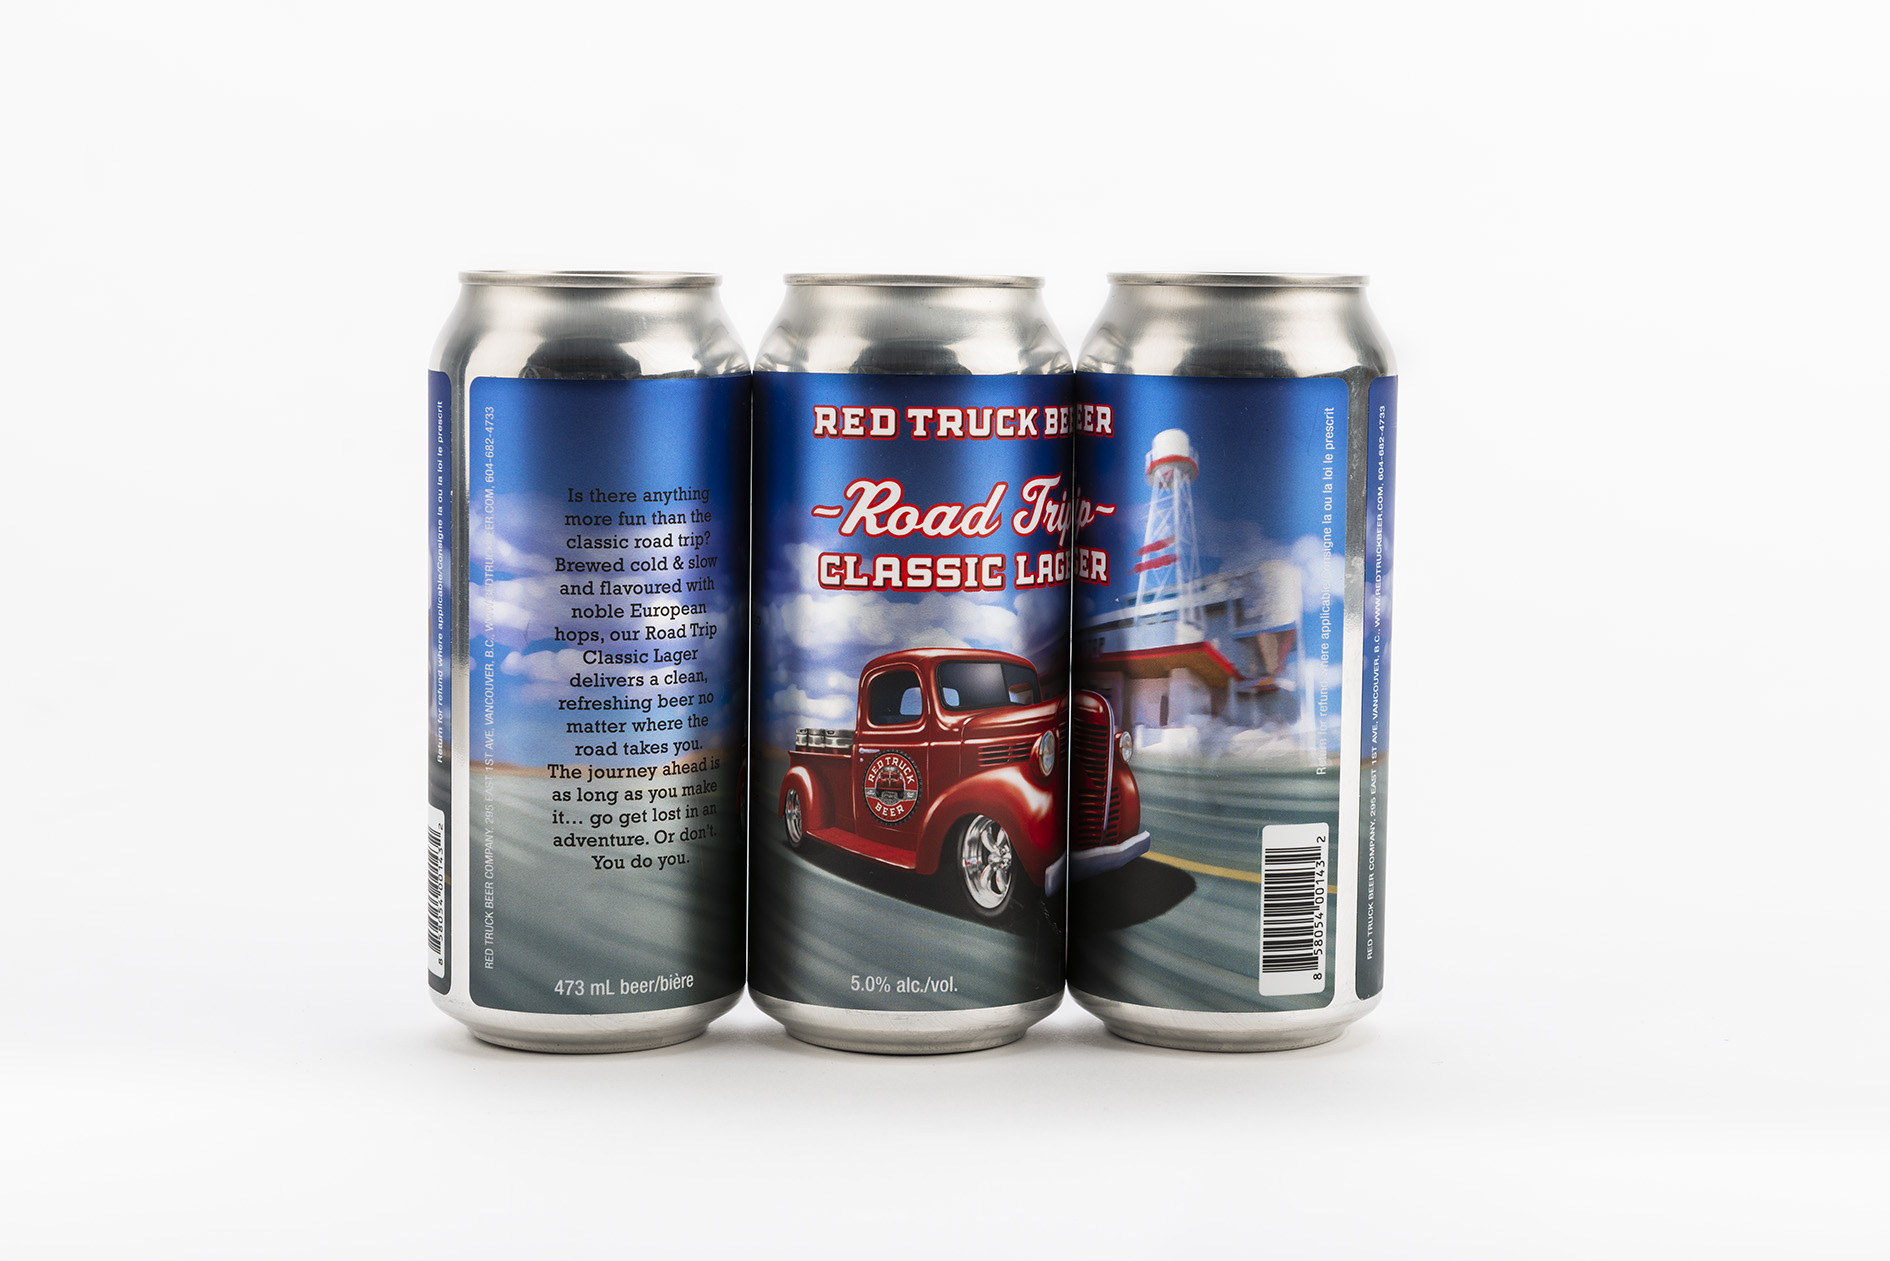 Red Truck Lager